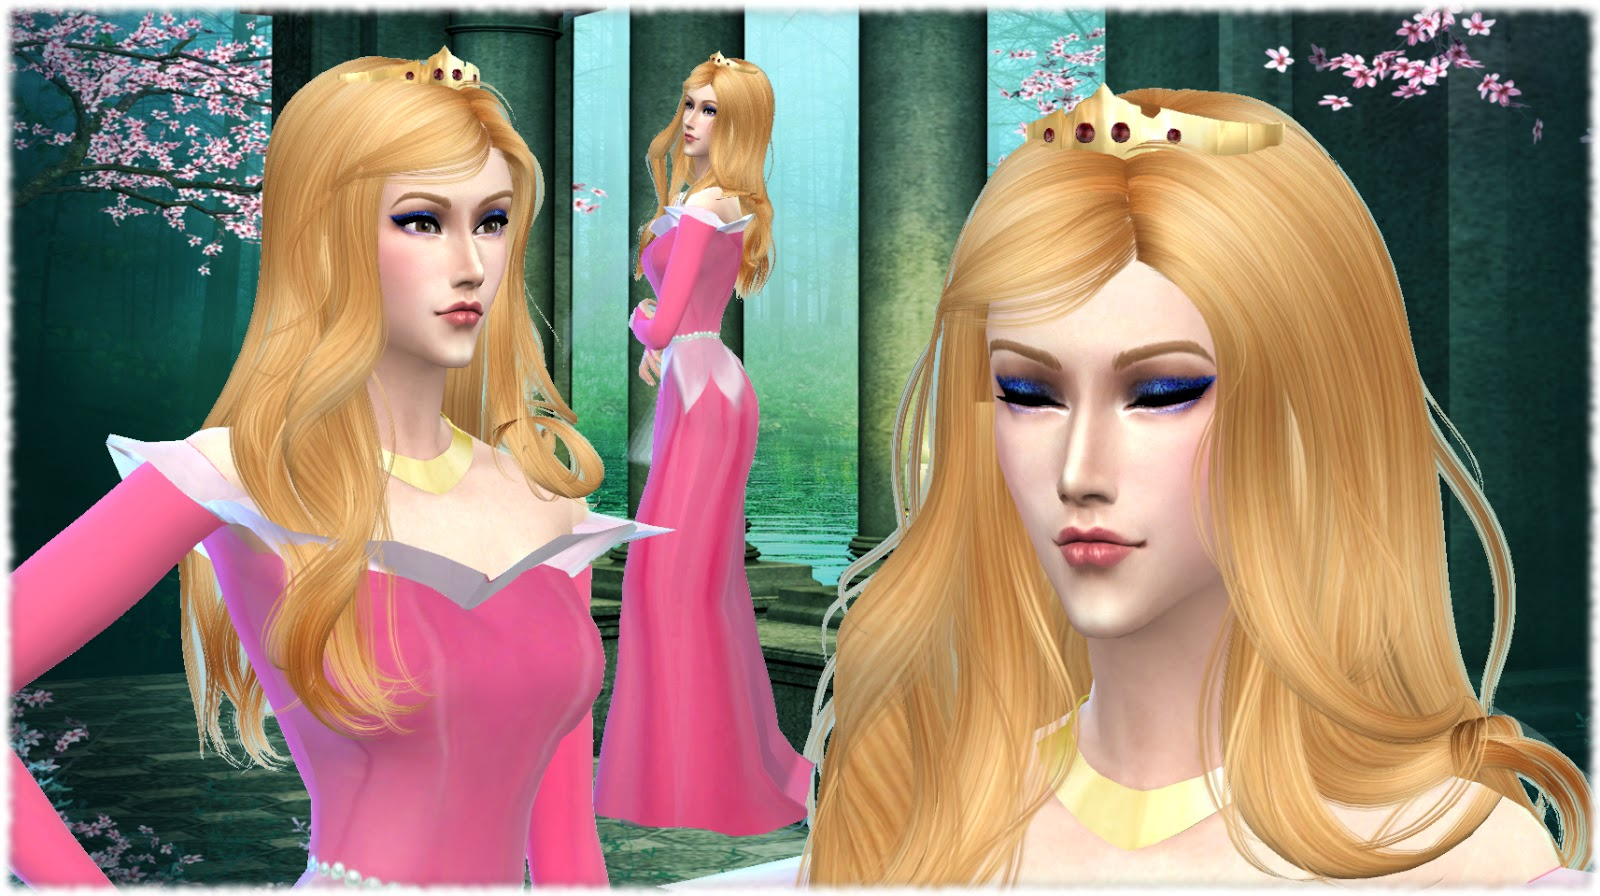 Mythical Dreams Sims 4: Sleeping Beauty Inspired Gown and